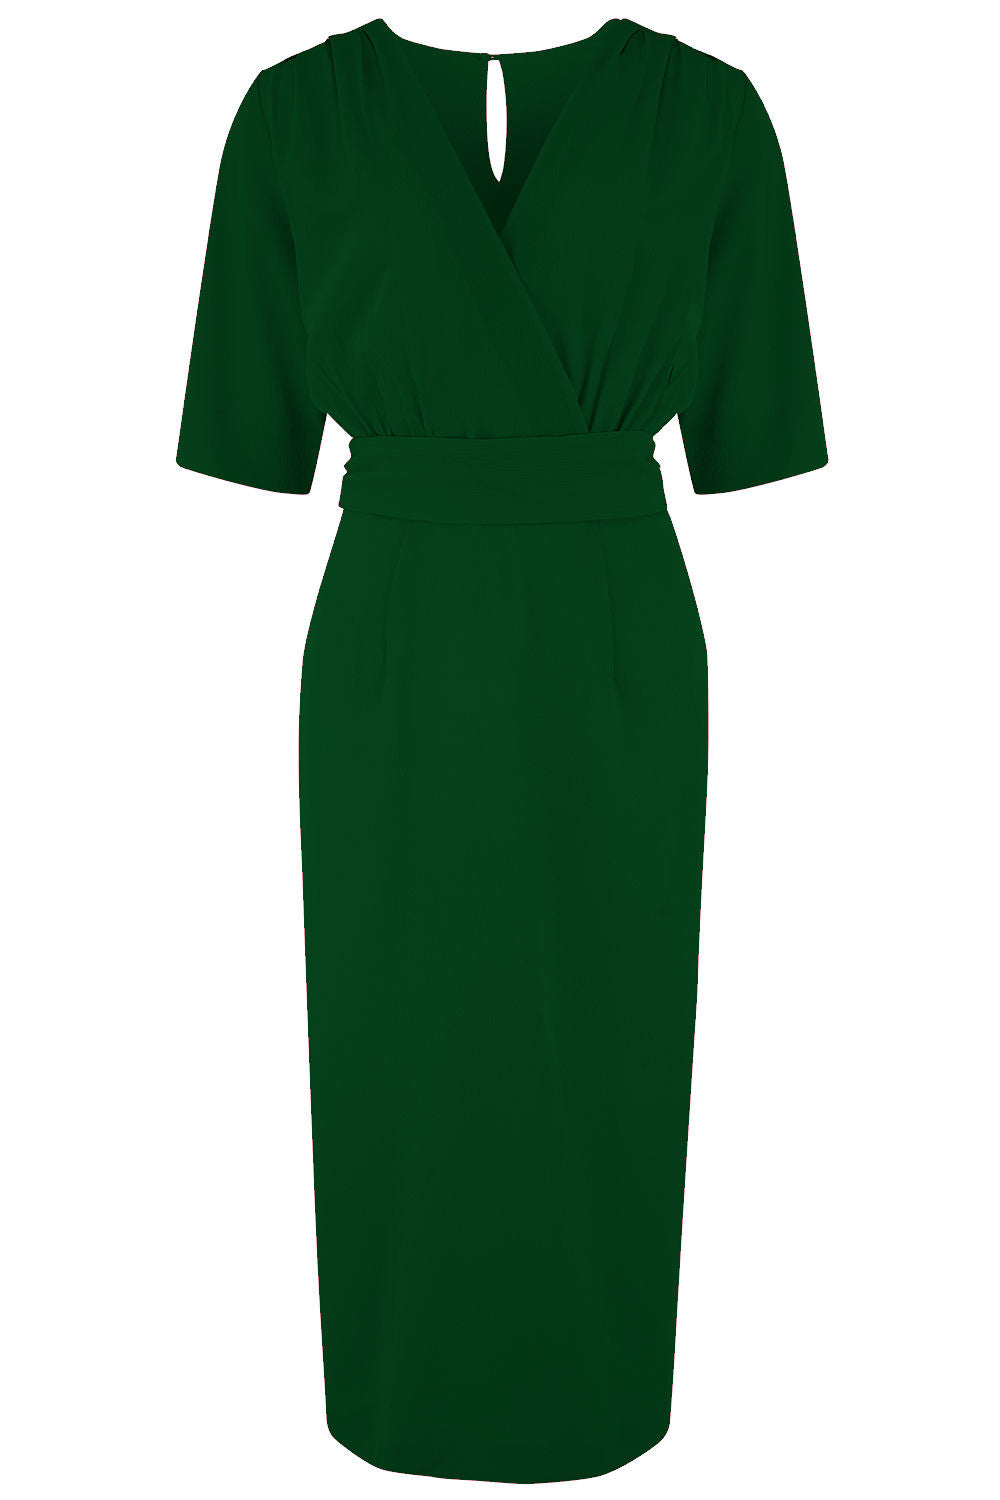 10+ Websites with 1940s Dresses for Sale The Evelyn Wiggle Dress in Green True Late 40s Early 50s Vintage Style £49.00 AT vintagedancer.com